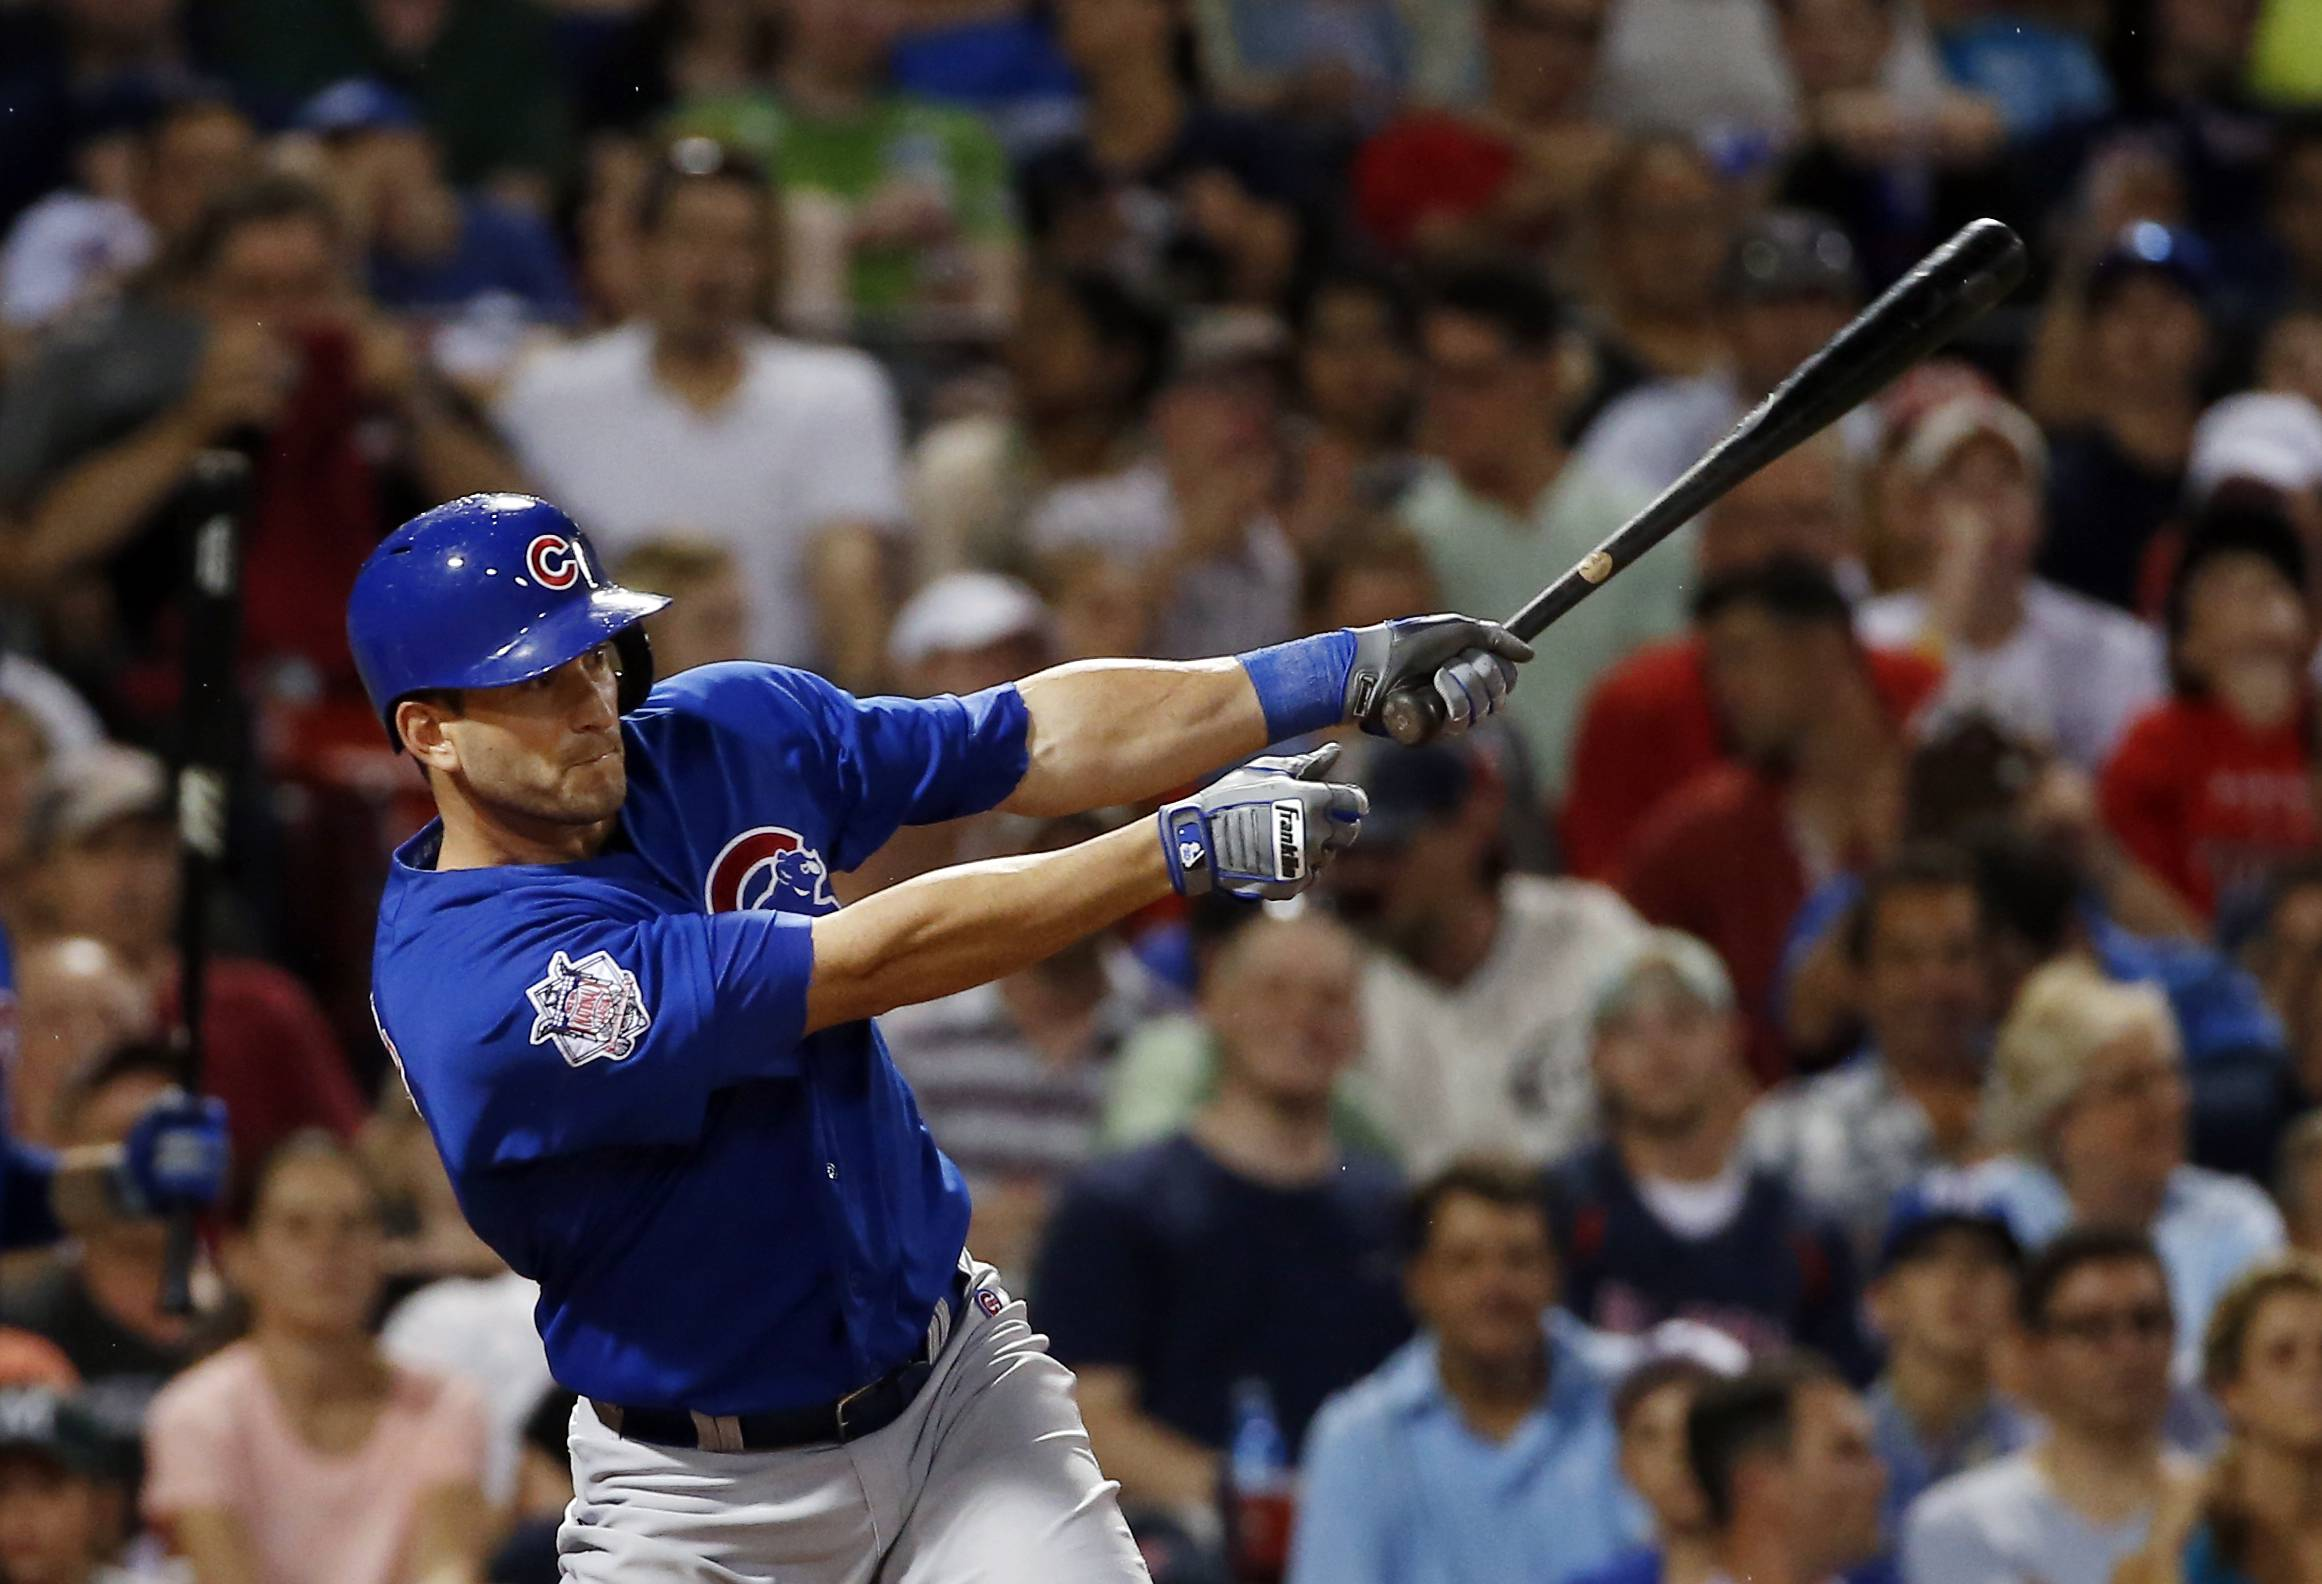 The Cubs' Justin Ruggiano delivers an RBI-single in the sixth inning Wednesday against the Red Sox. Ruggiano had homered earlier in the game.